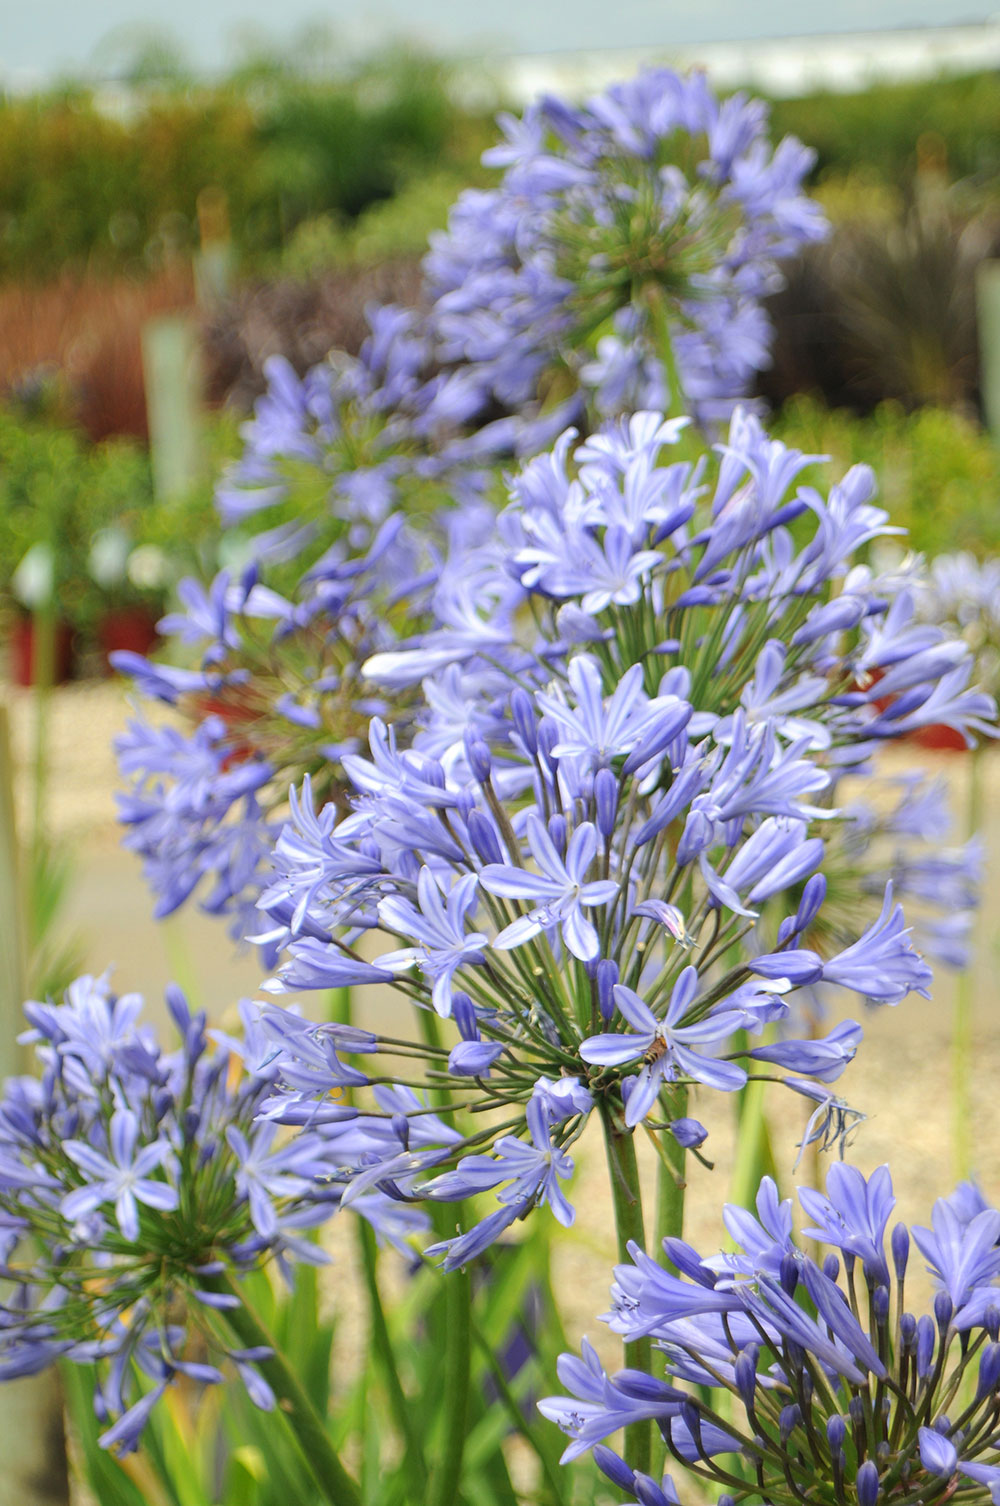 Water corporation of wa lily of the nile african lily agapanthus close window izmirmasajfo